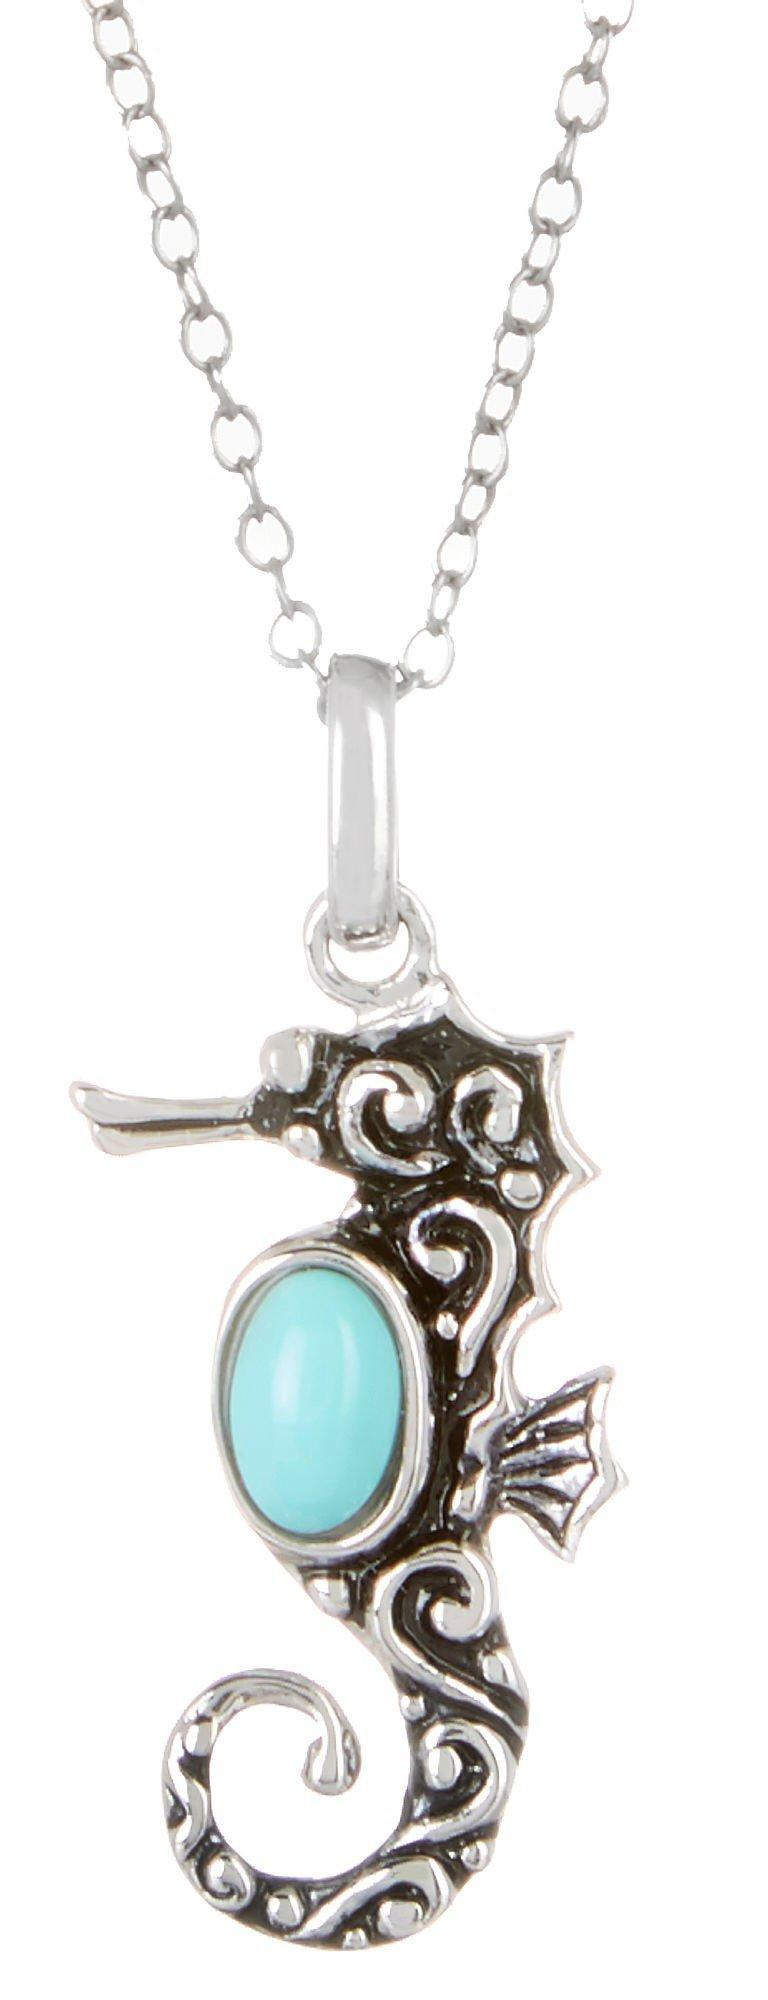 Signature Seahorse Pendant Sterling Silver Necklace